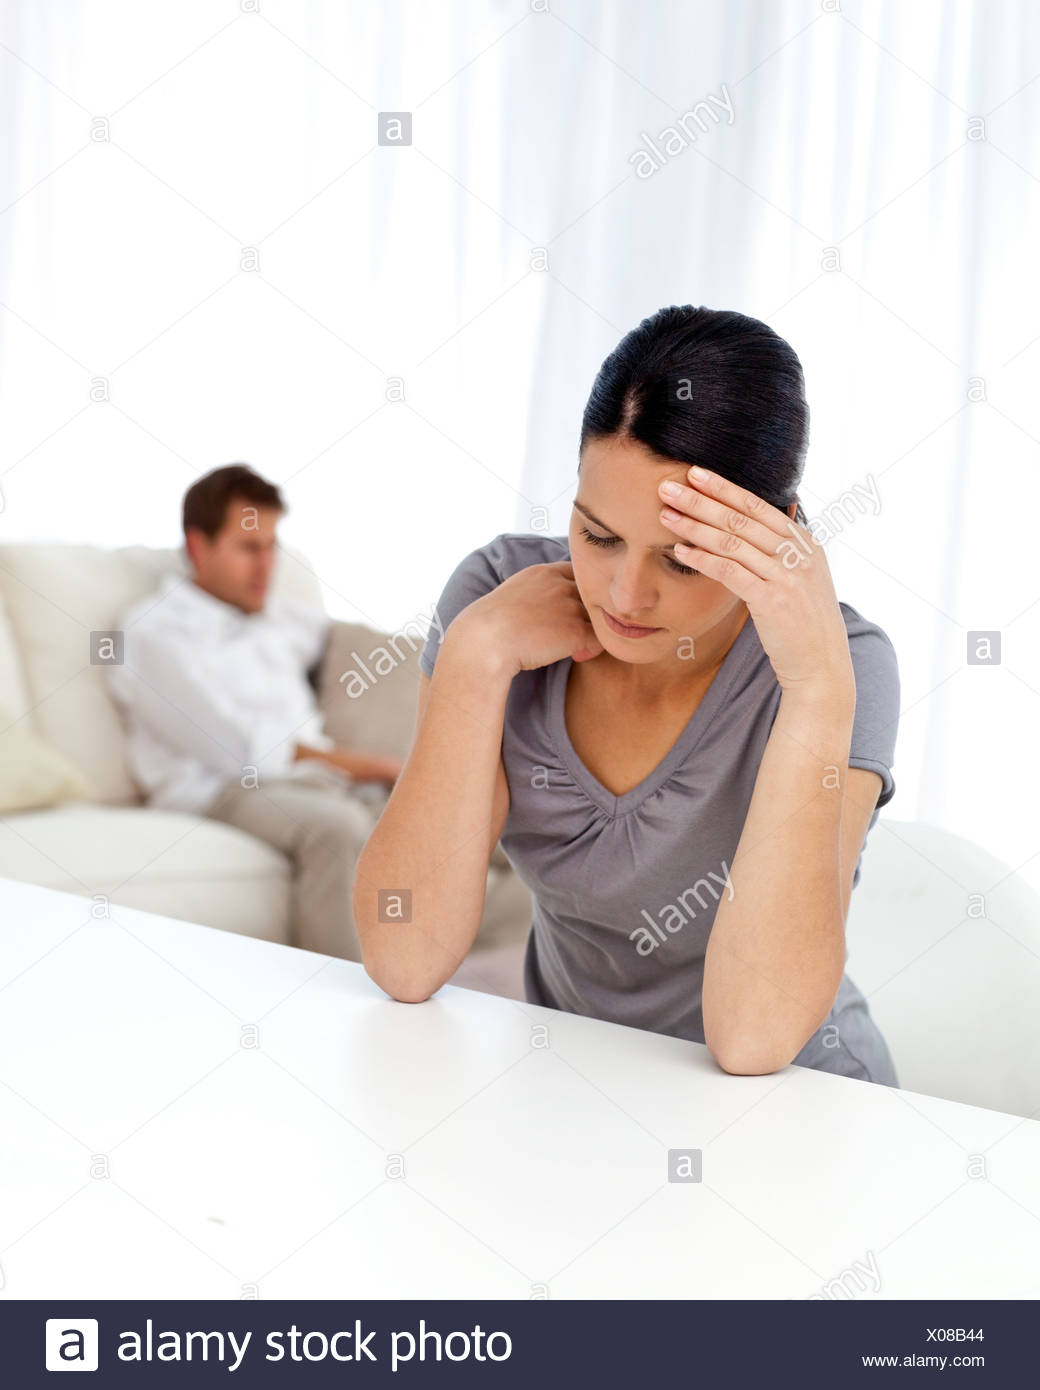 Worried woman sitting at a table while her boyfriend is lying on the sofa - Stock Image